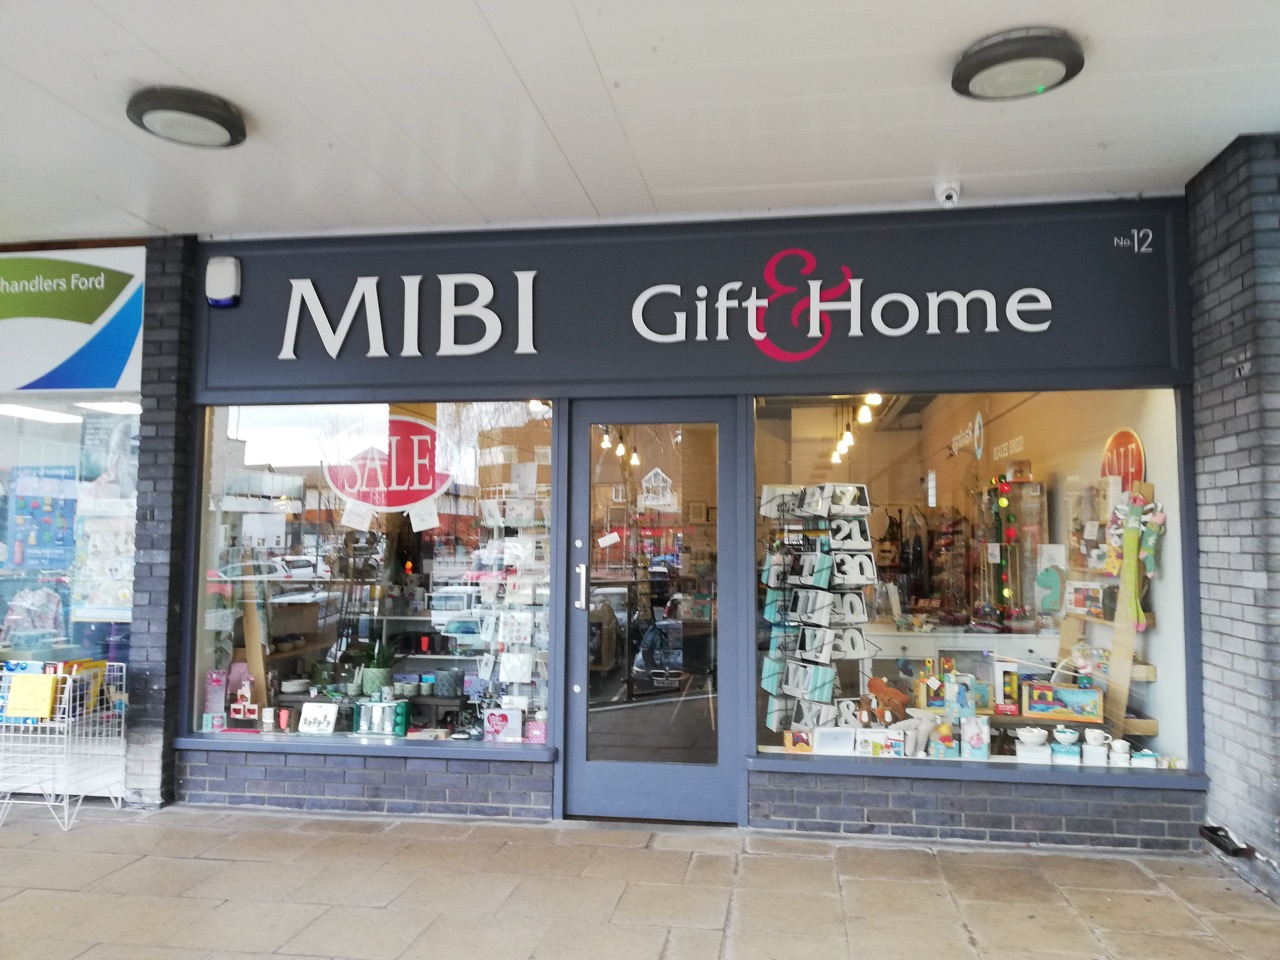 Mibi shop in Chandler's Ford